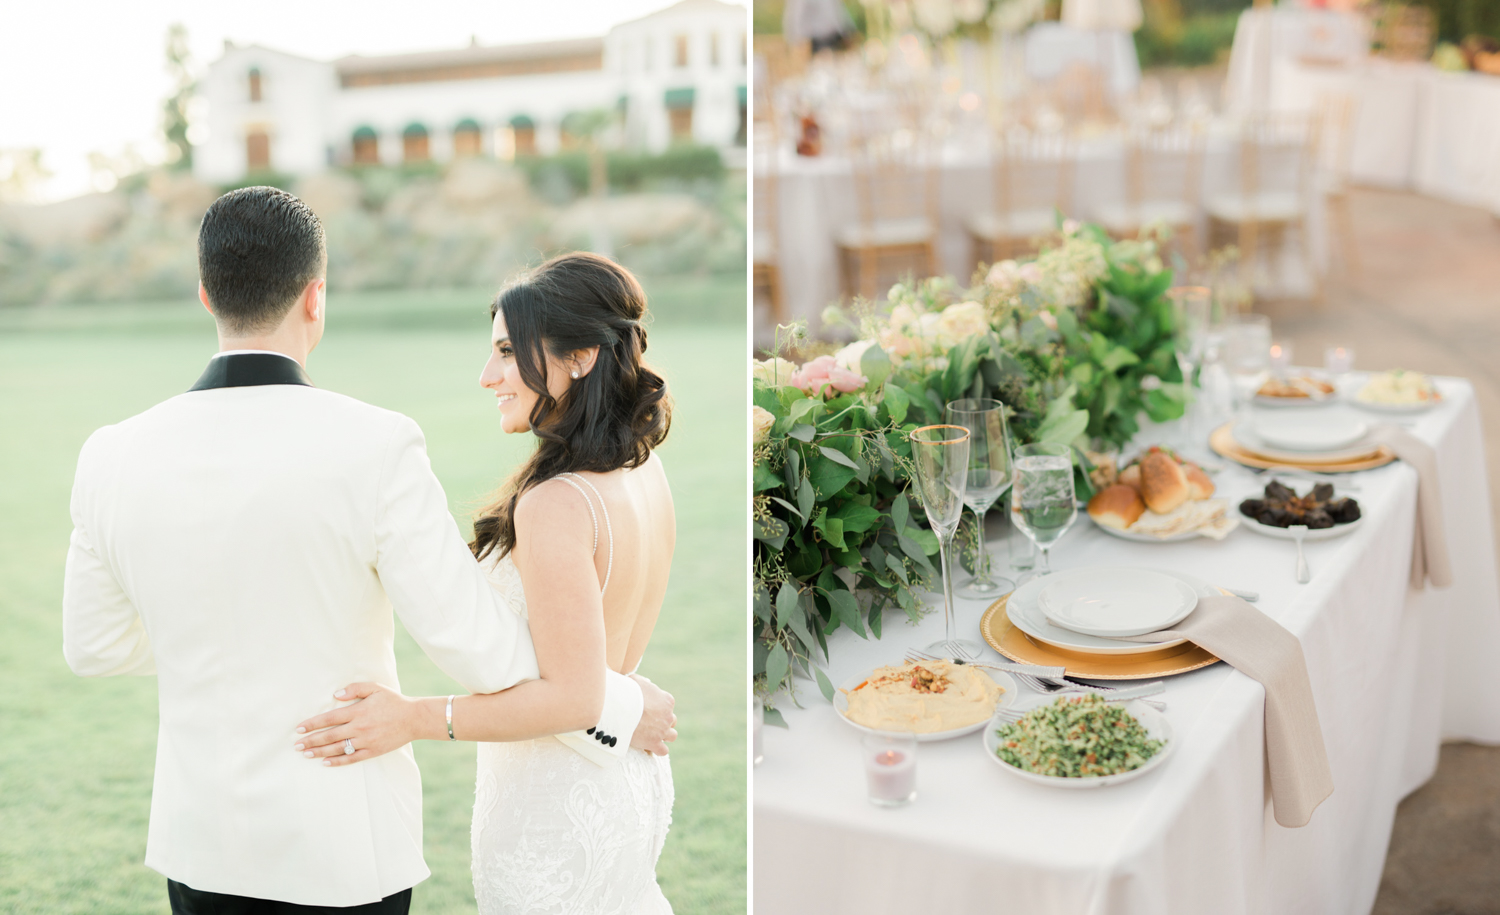 azer&michelle_hummingbird_nest_ranch_wedding_fine_art_photographer_los_angeles-40.jpg